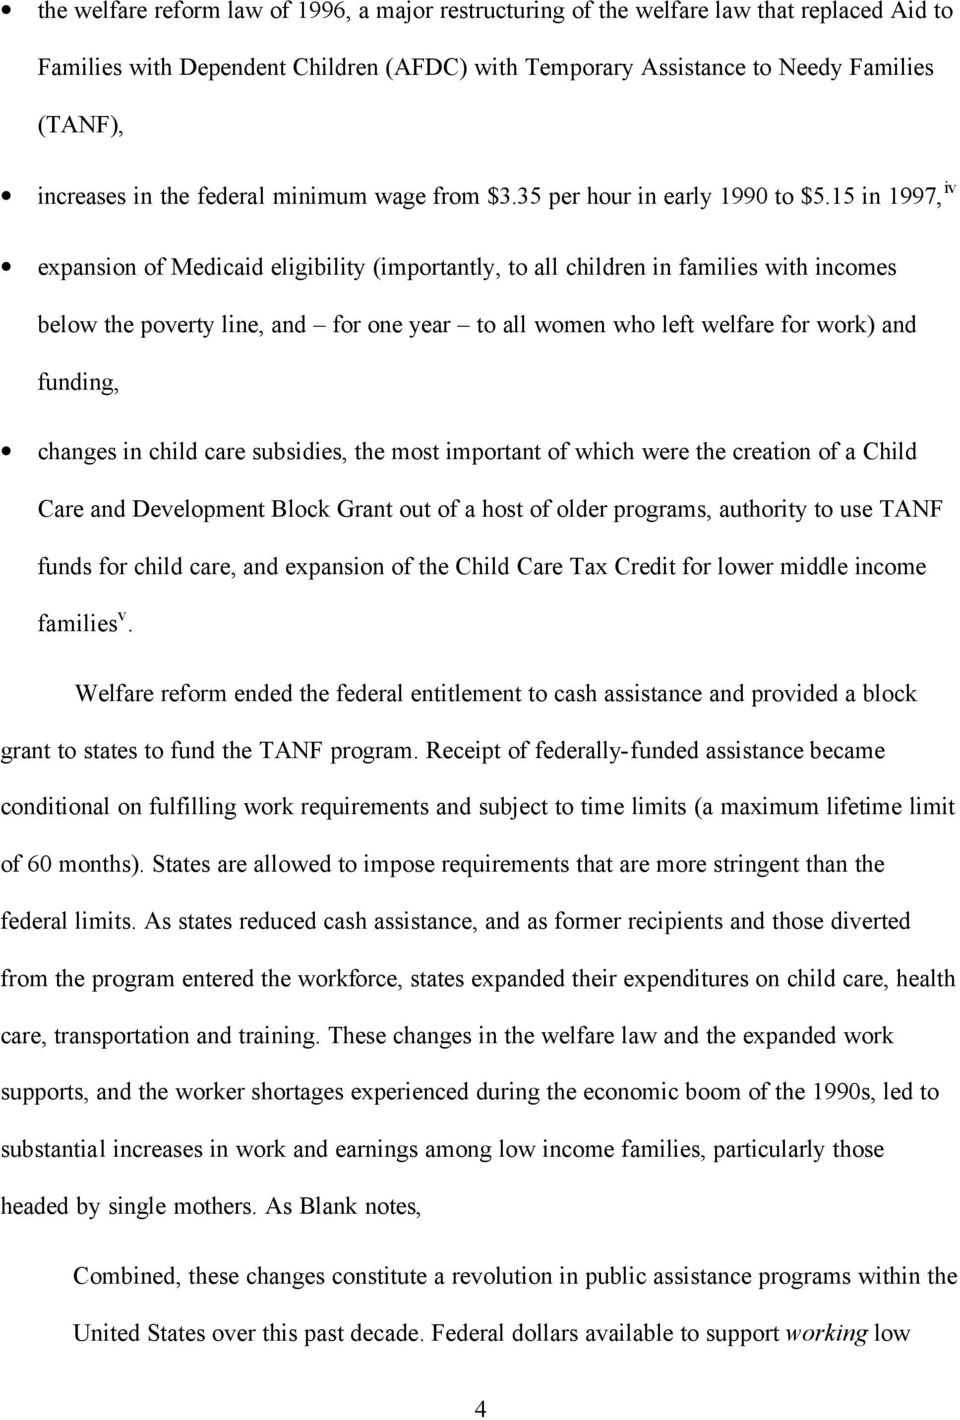 15 in 1997, iv expansion of Medicaid eligibility (importantly, to all children in families with incomes below the poverty line, and for one year to all women who left welfare for work) and funding,